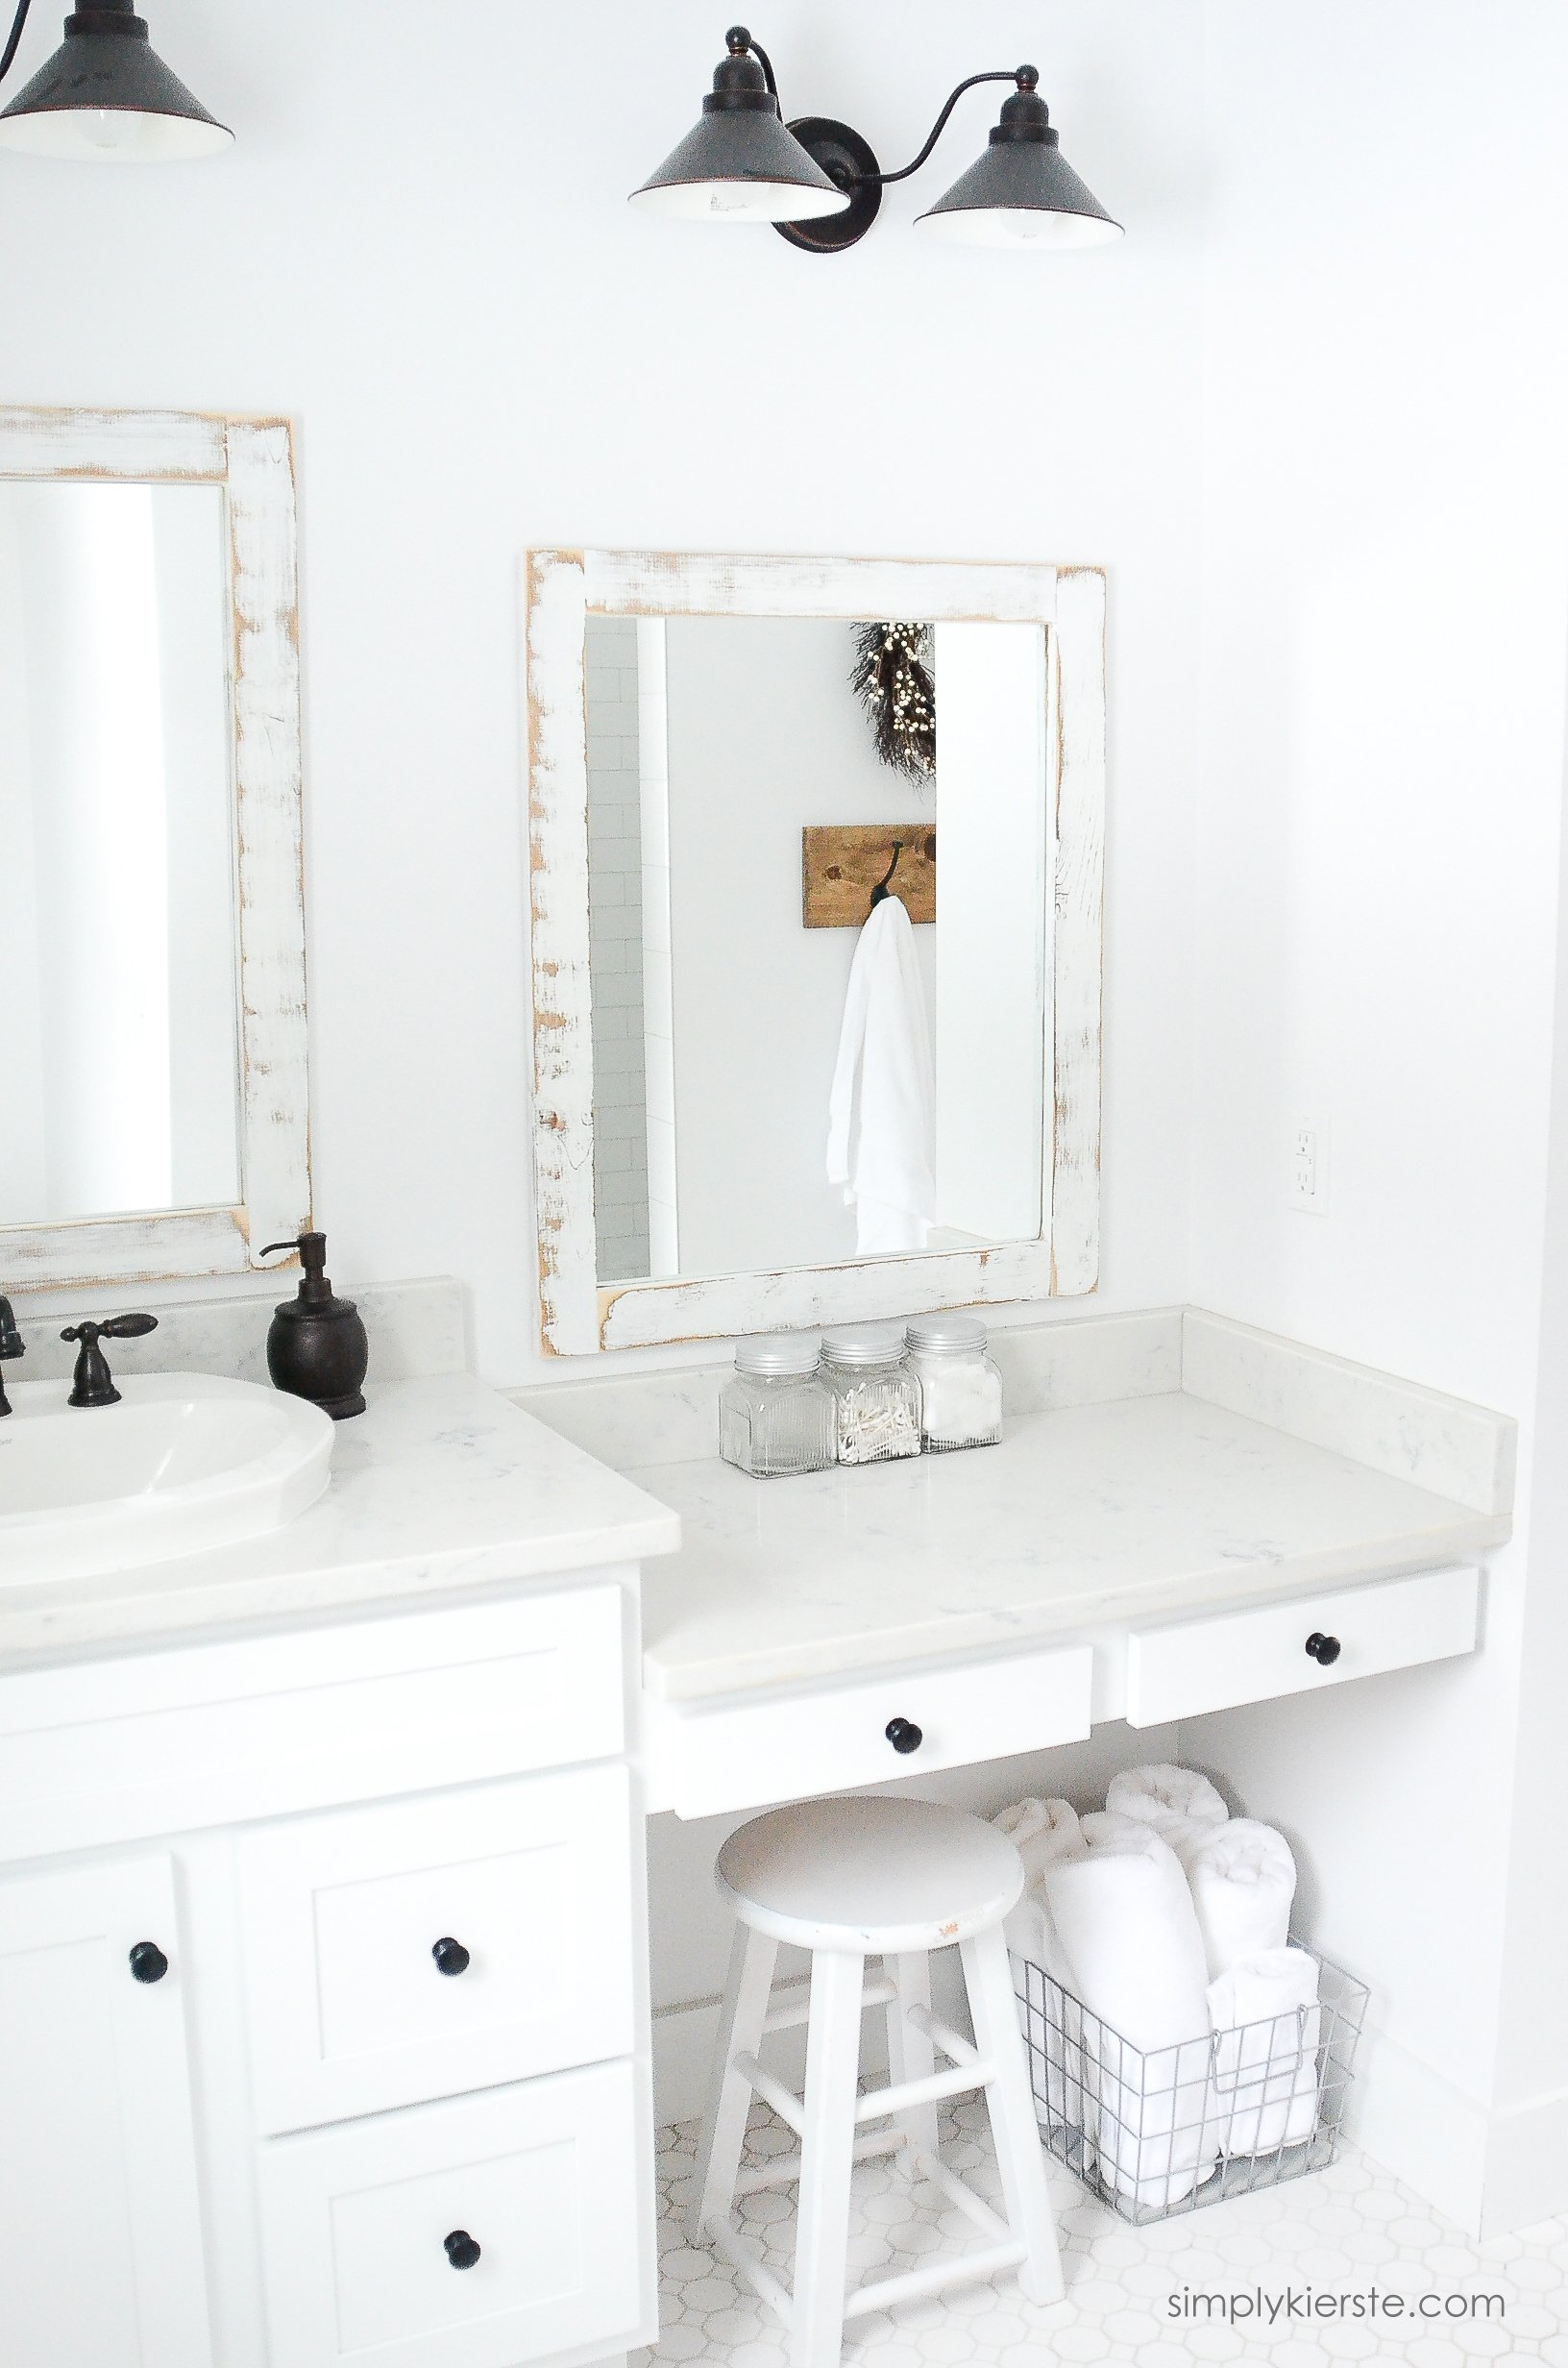 Bathroom Mirrors Farmhouse farmhouse bathroom + diy framed mirrors - simply kierste design co.